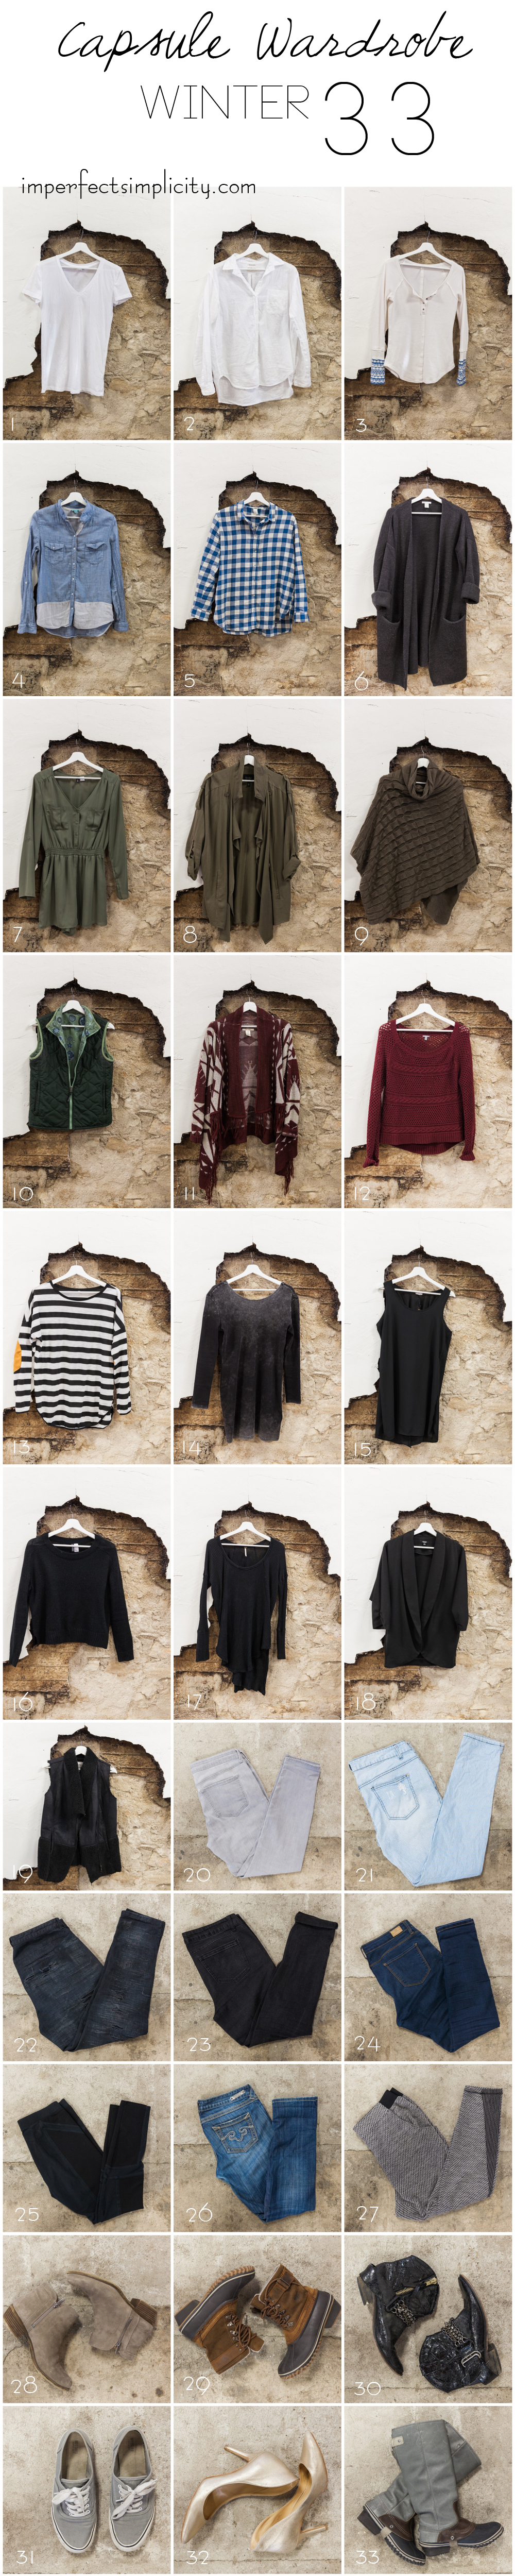 Capsule-Wardrobe-Winter-2016-Imperfect-Simplicity.jpg